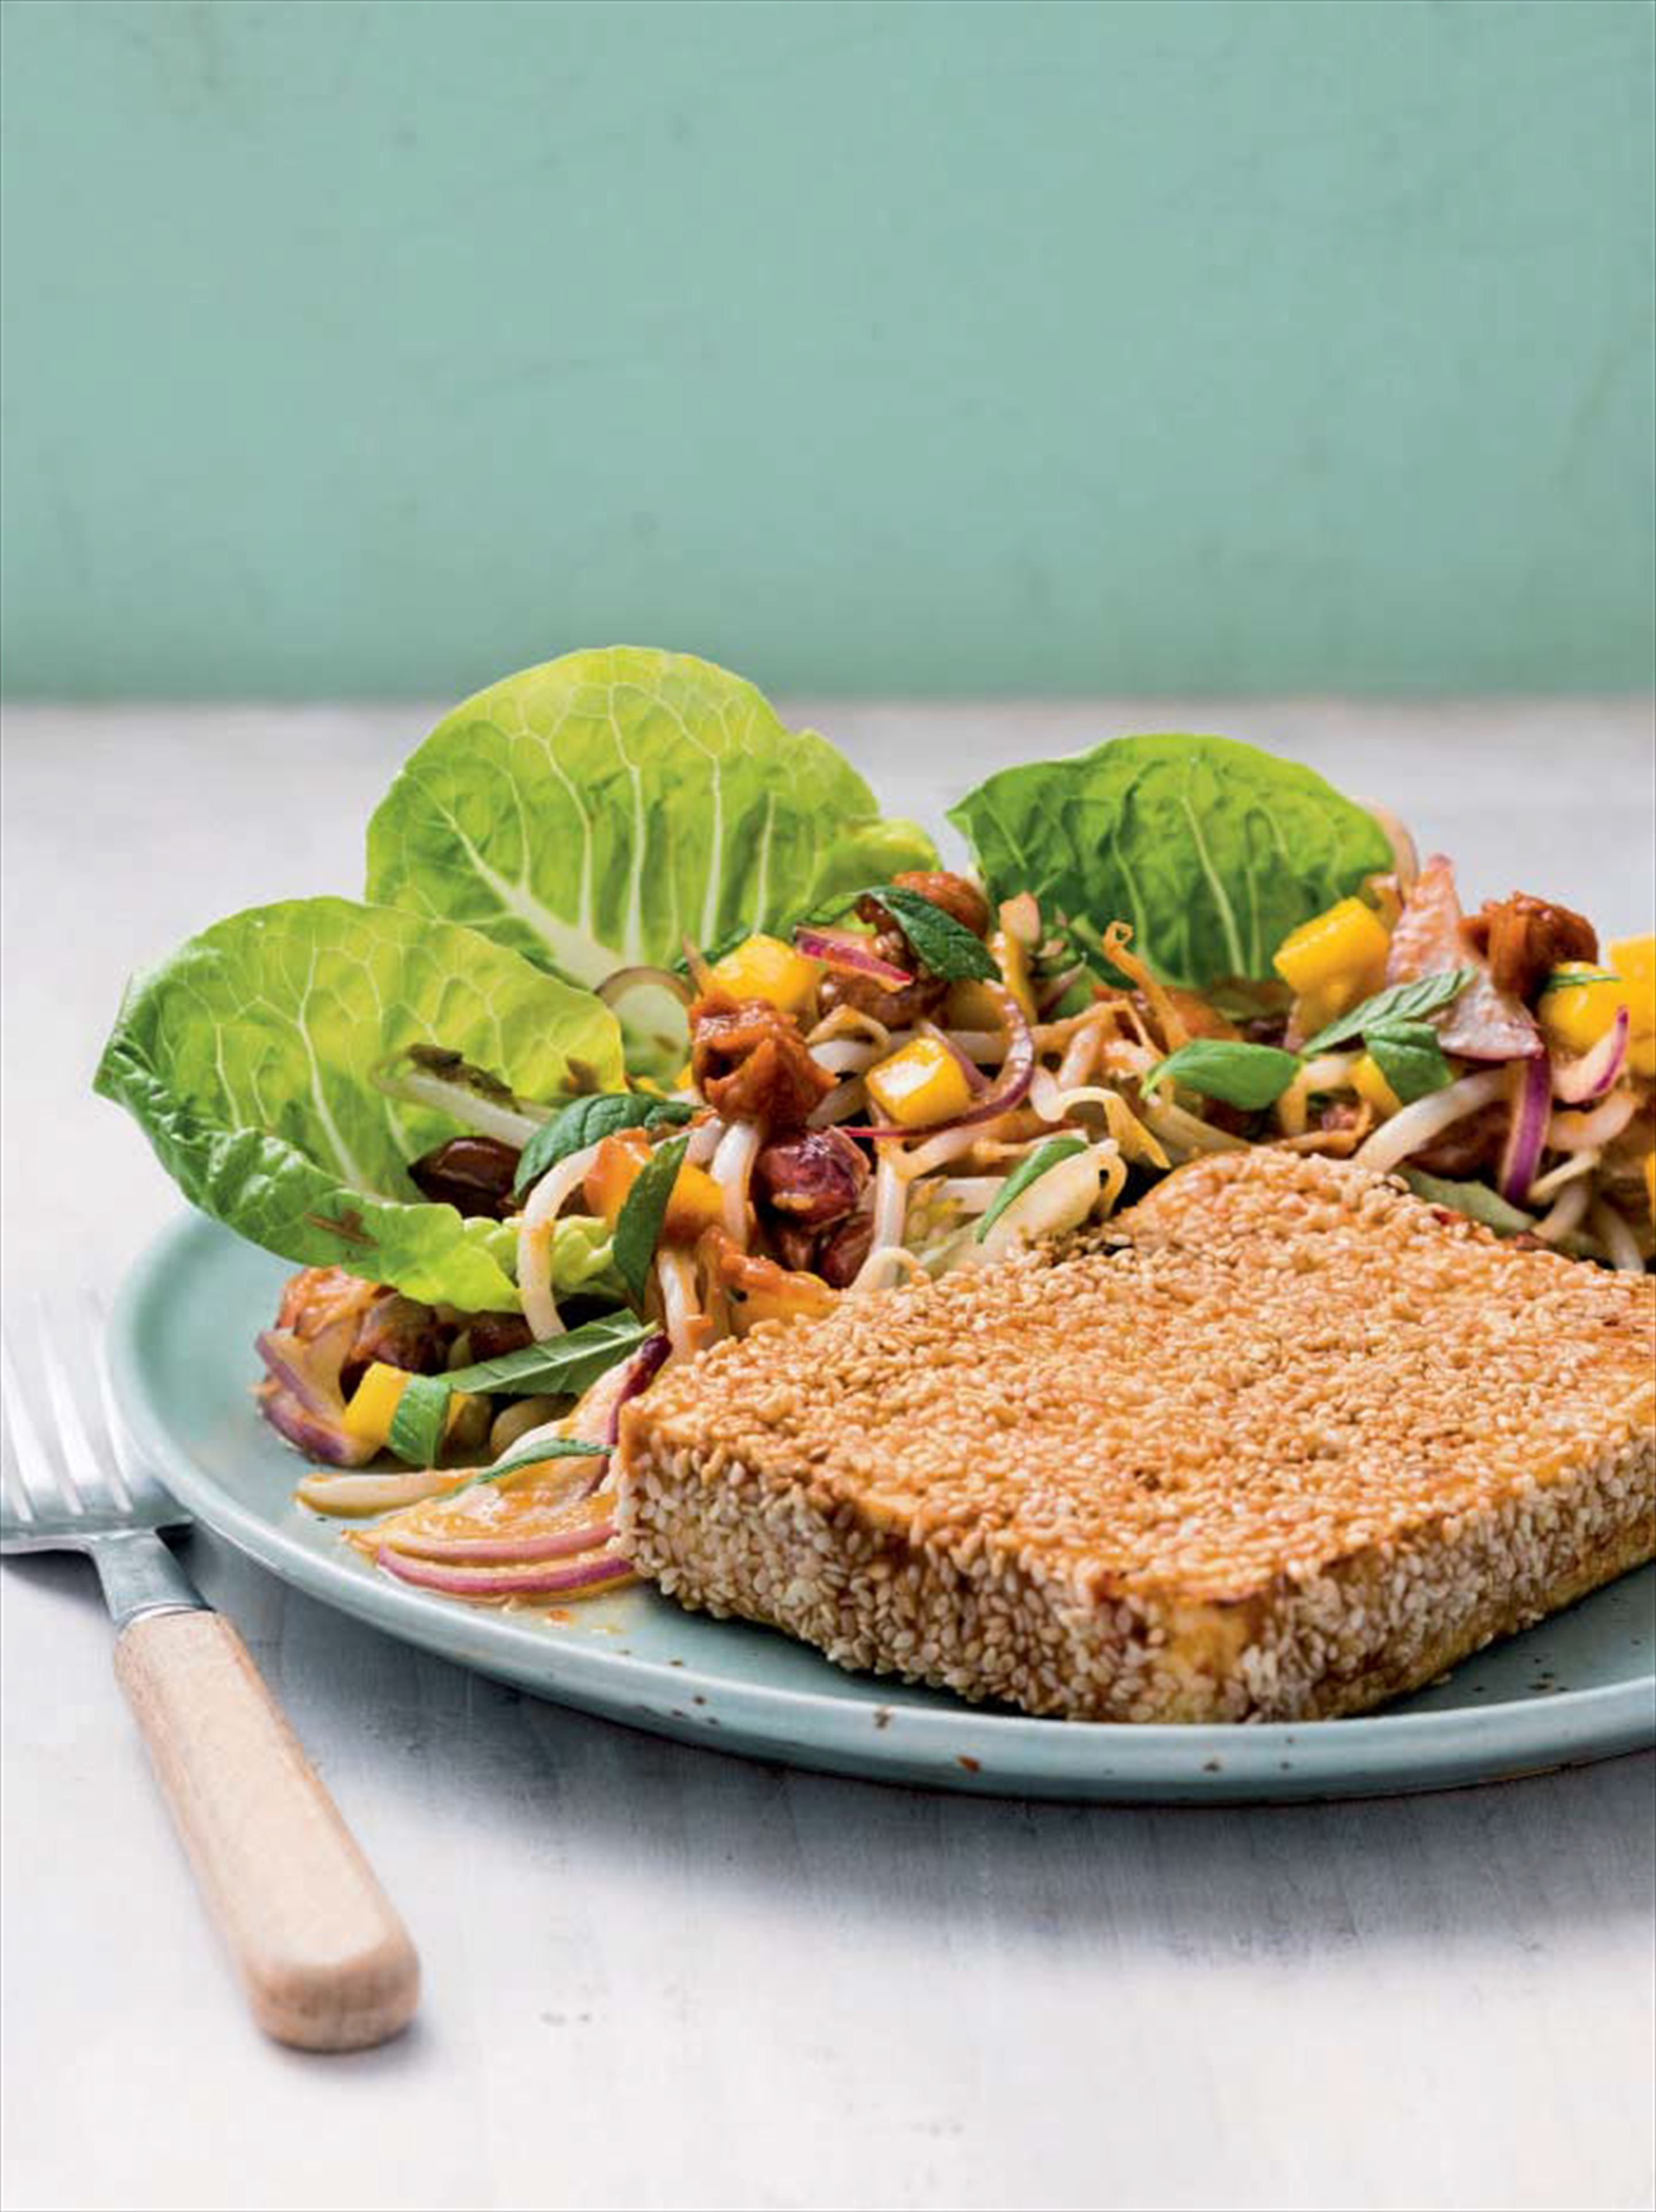 Marinated tofu 'steak' with sesame & mango salsa